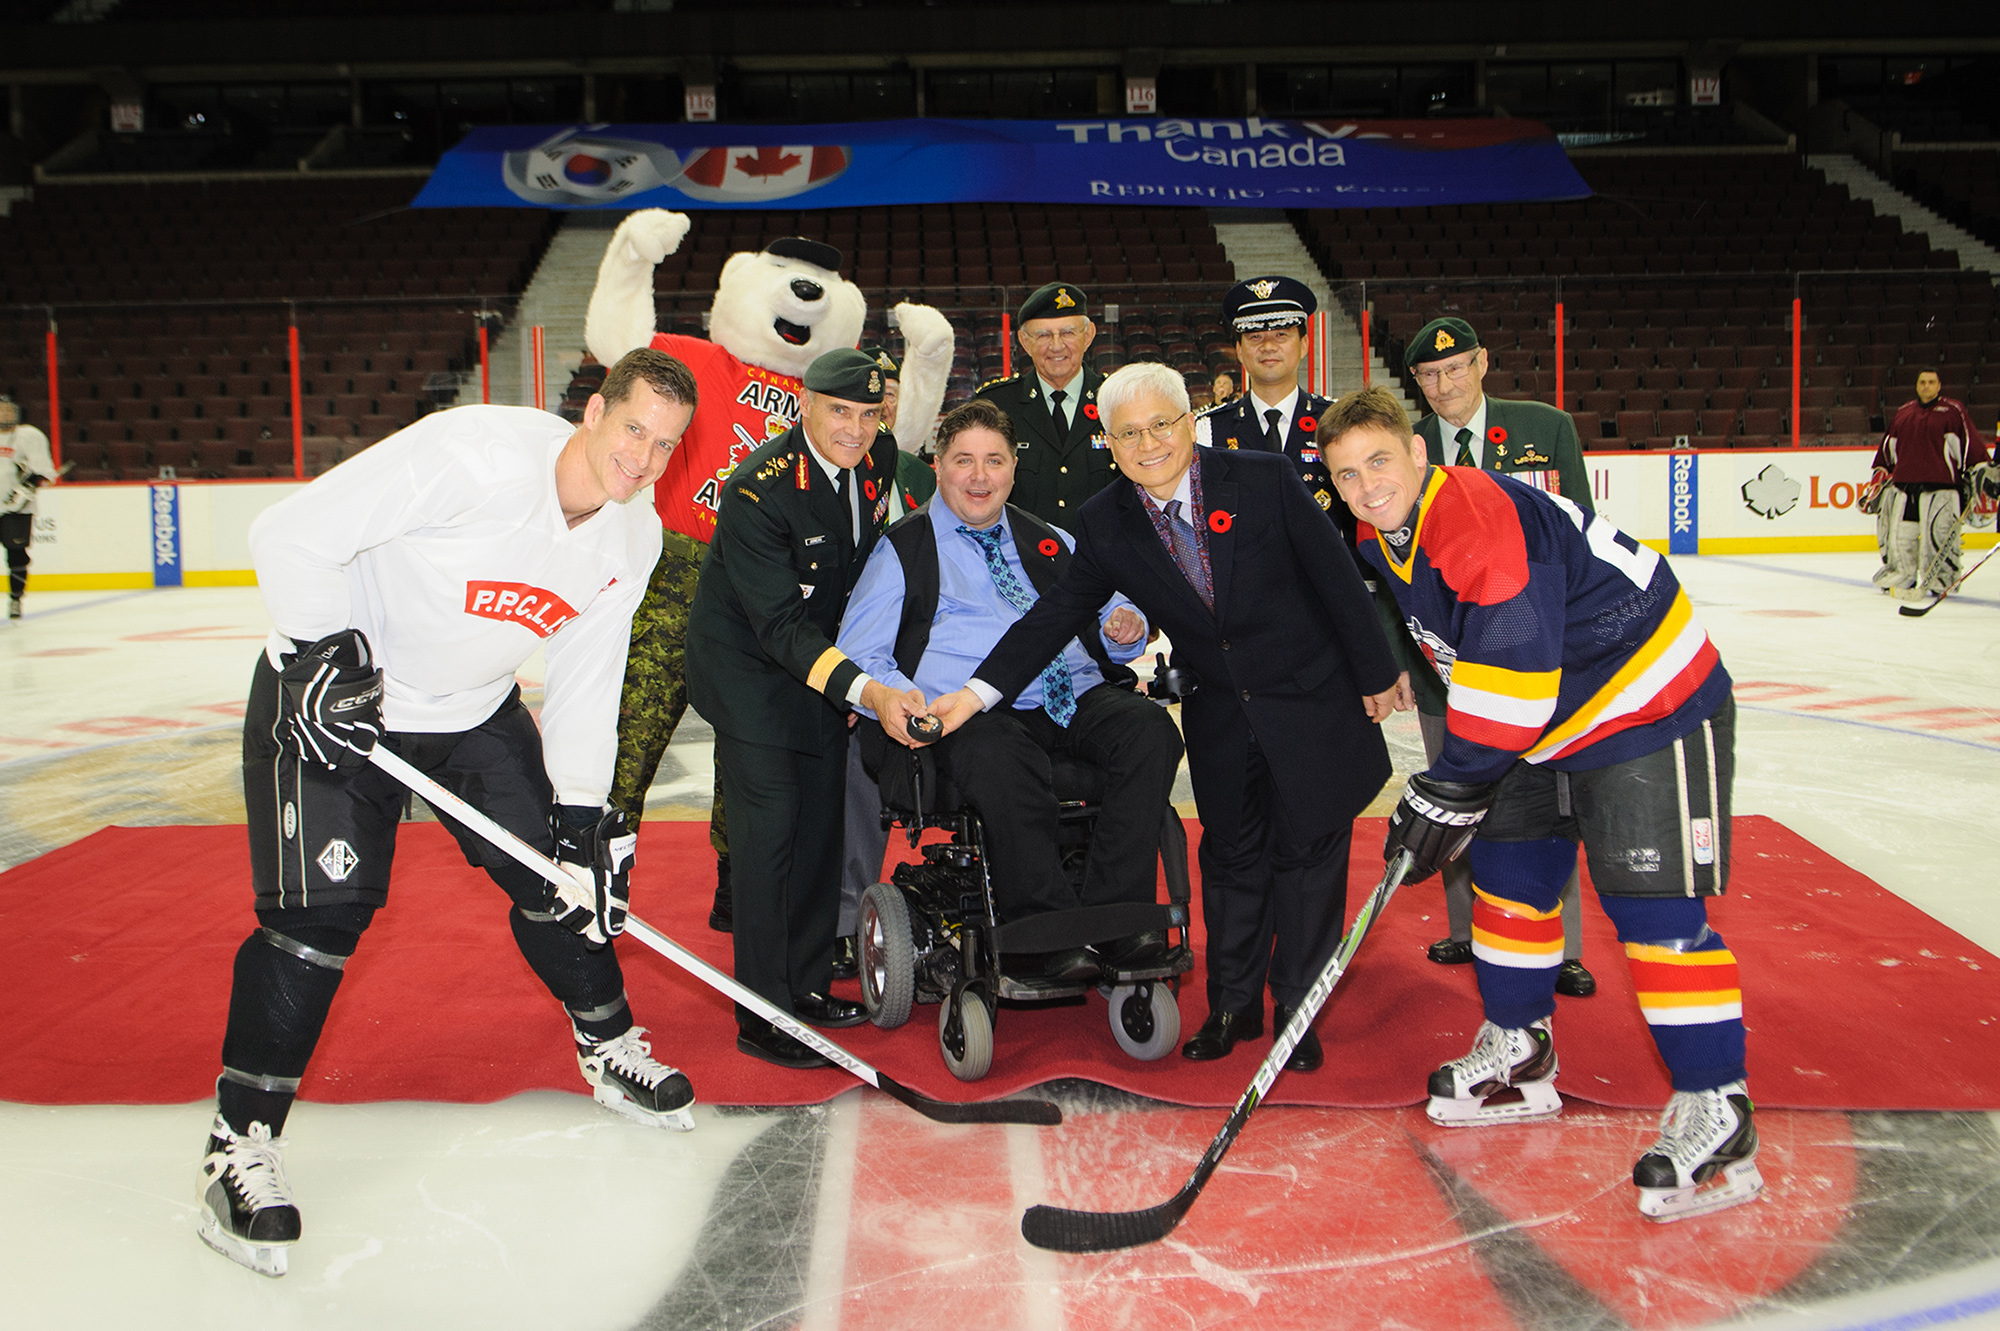 dropping the puck at the Imjin Classic hockey game